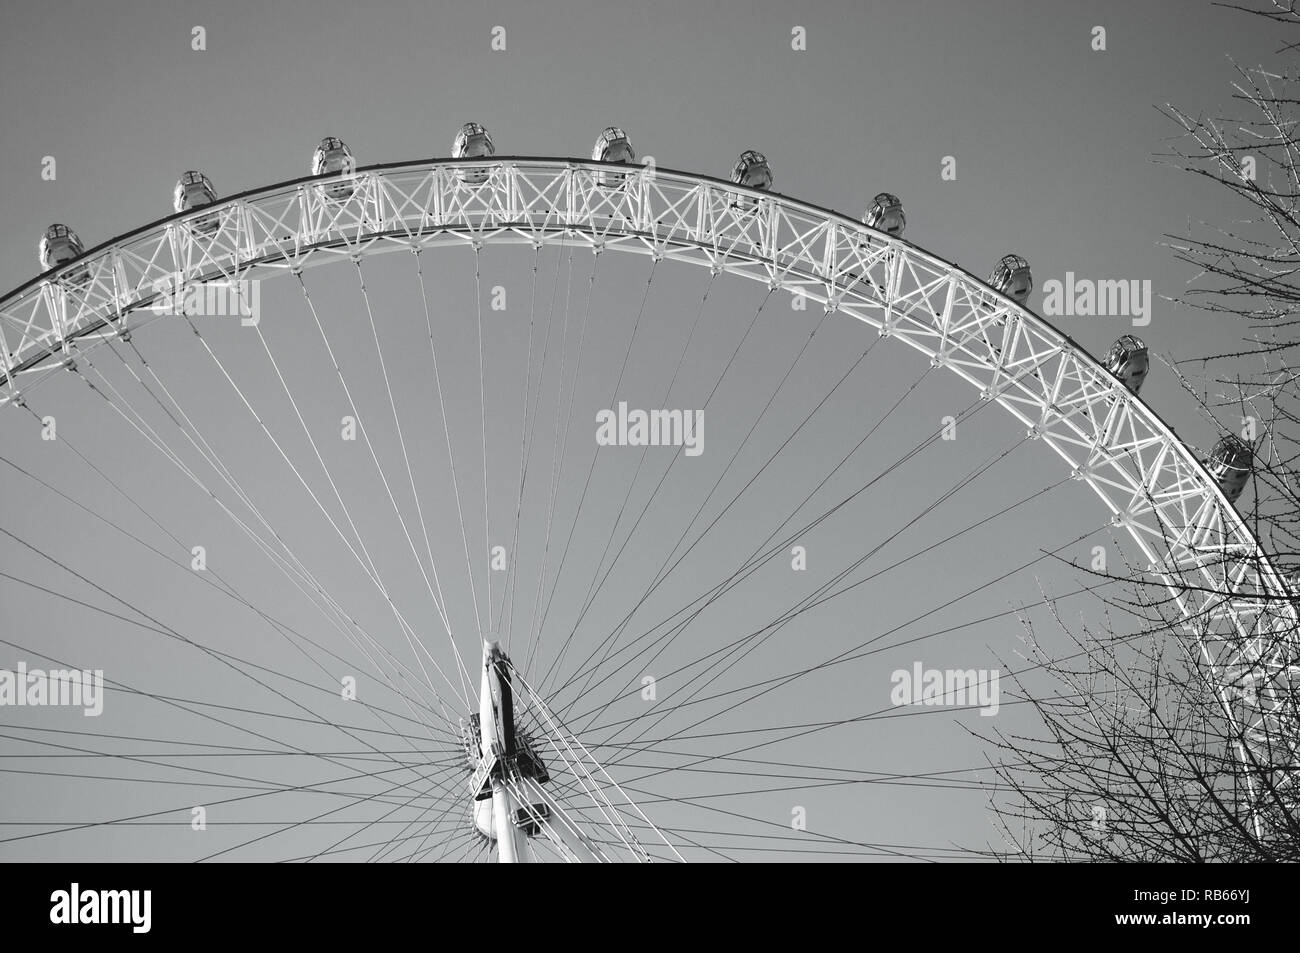 A black and white print of the London Eye / Millennium Wheel in London, England. - Stock Image